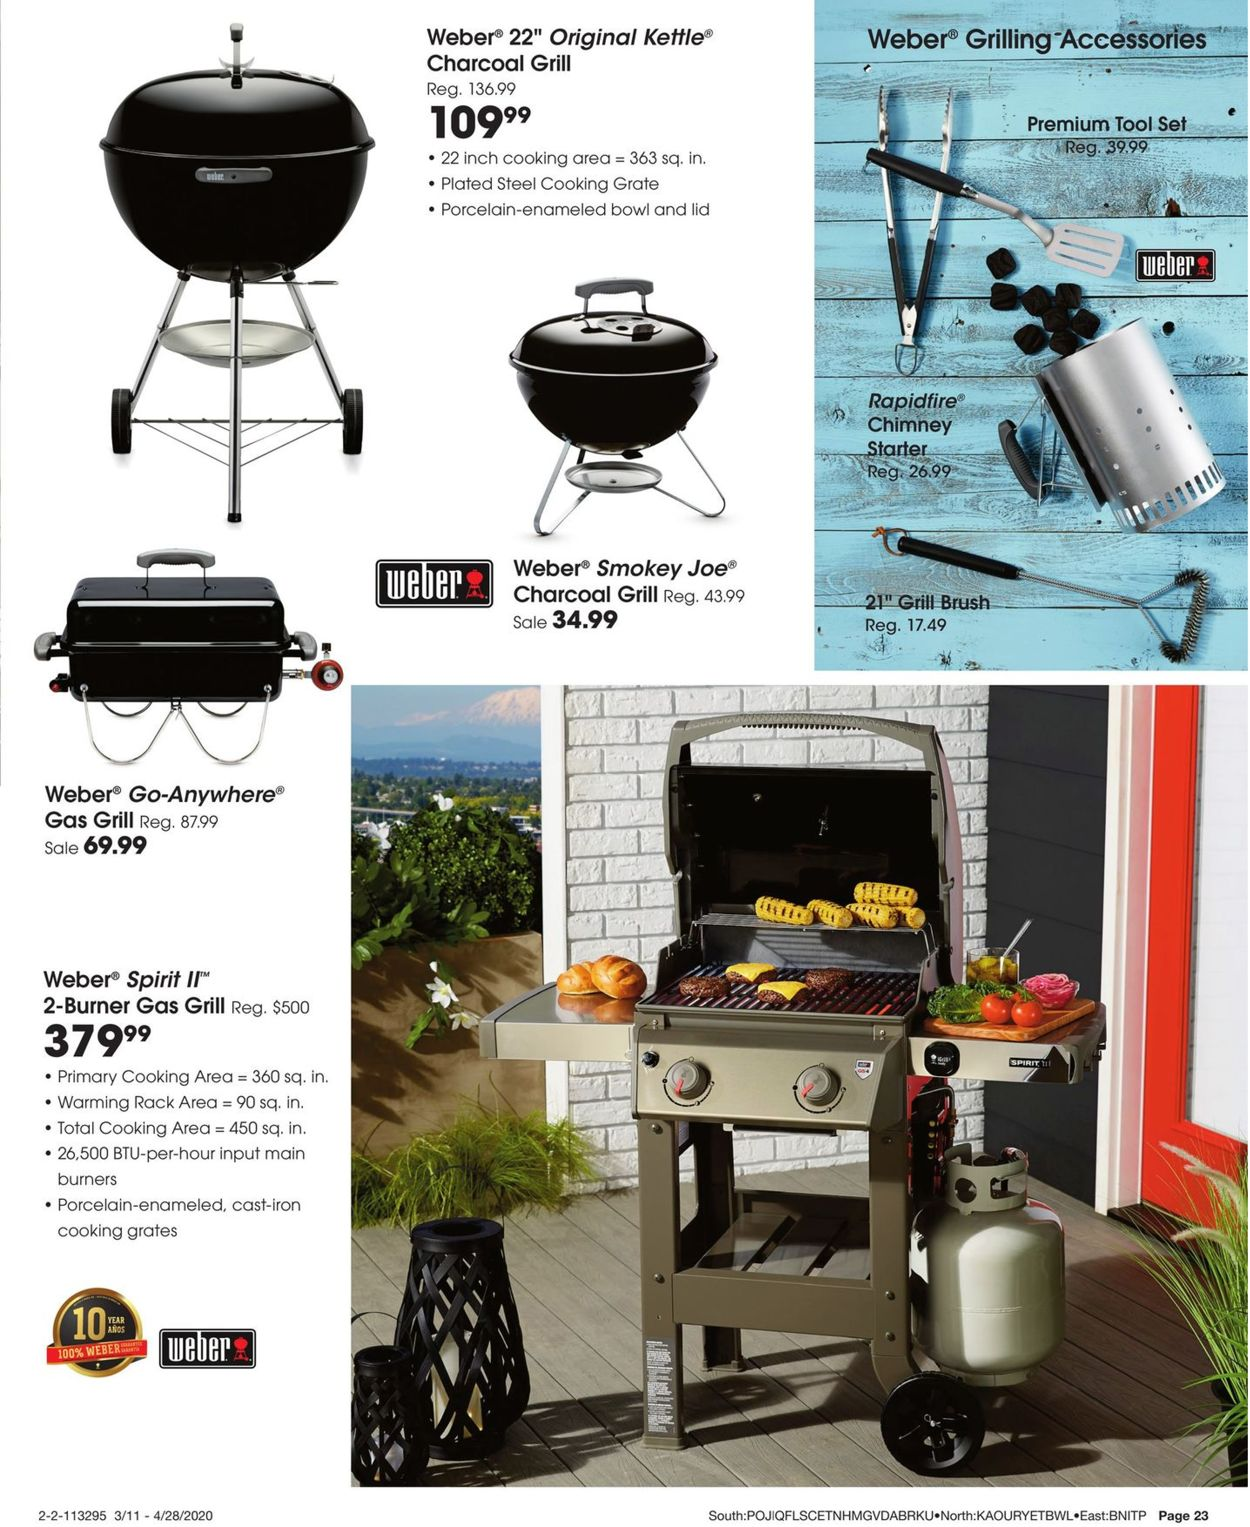 Fred Meyer Current Weekly Ad 03 11 04 28 2020 23 Frequent Ads Com